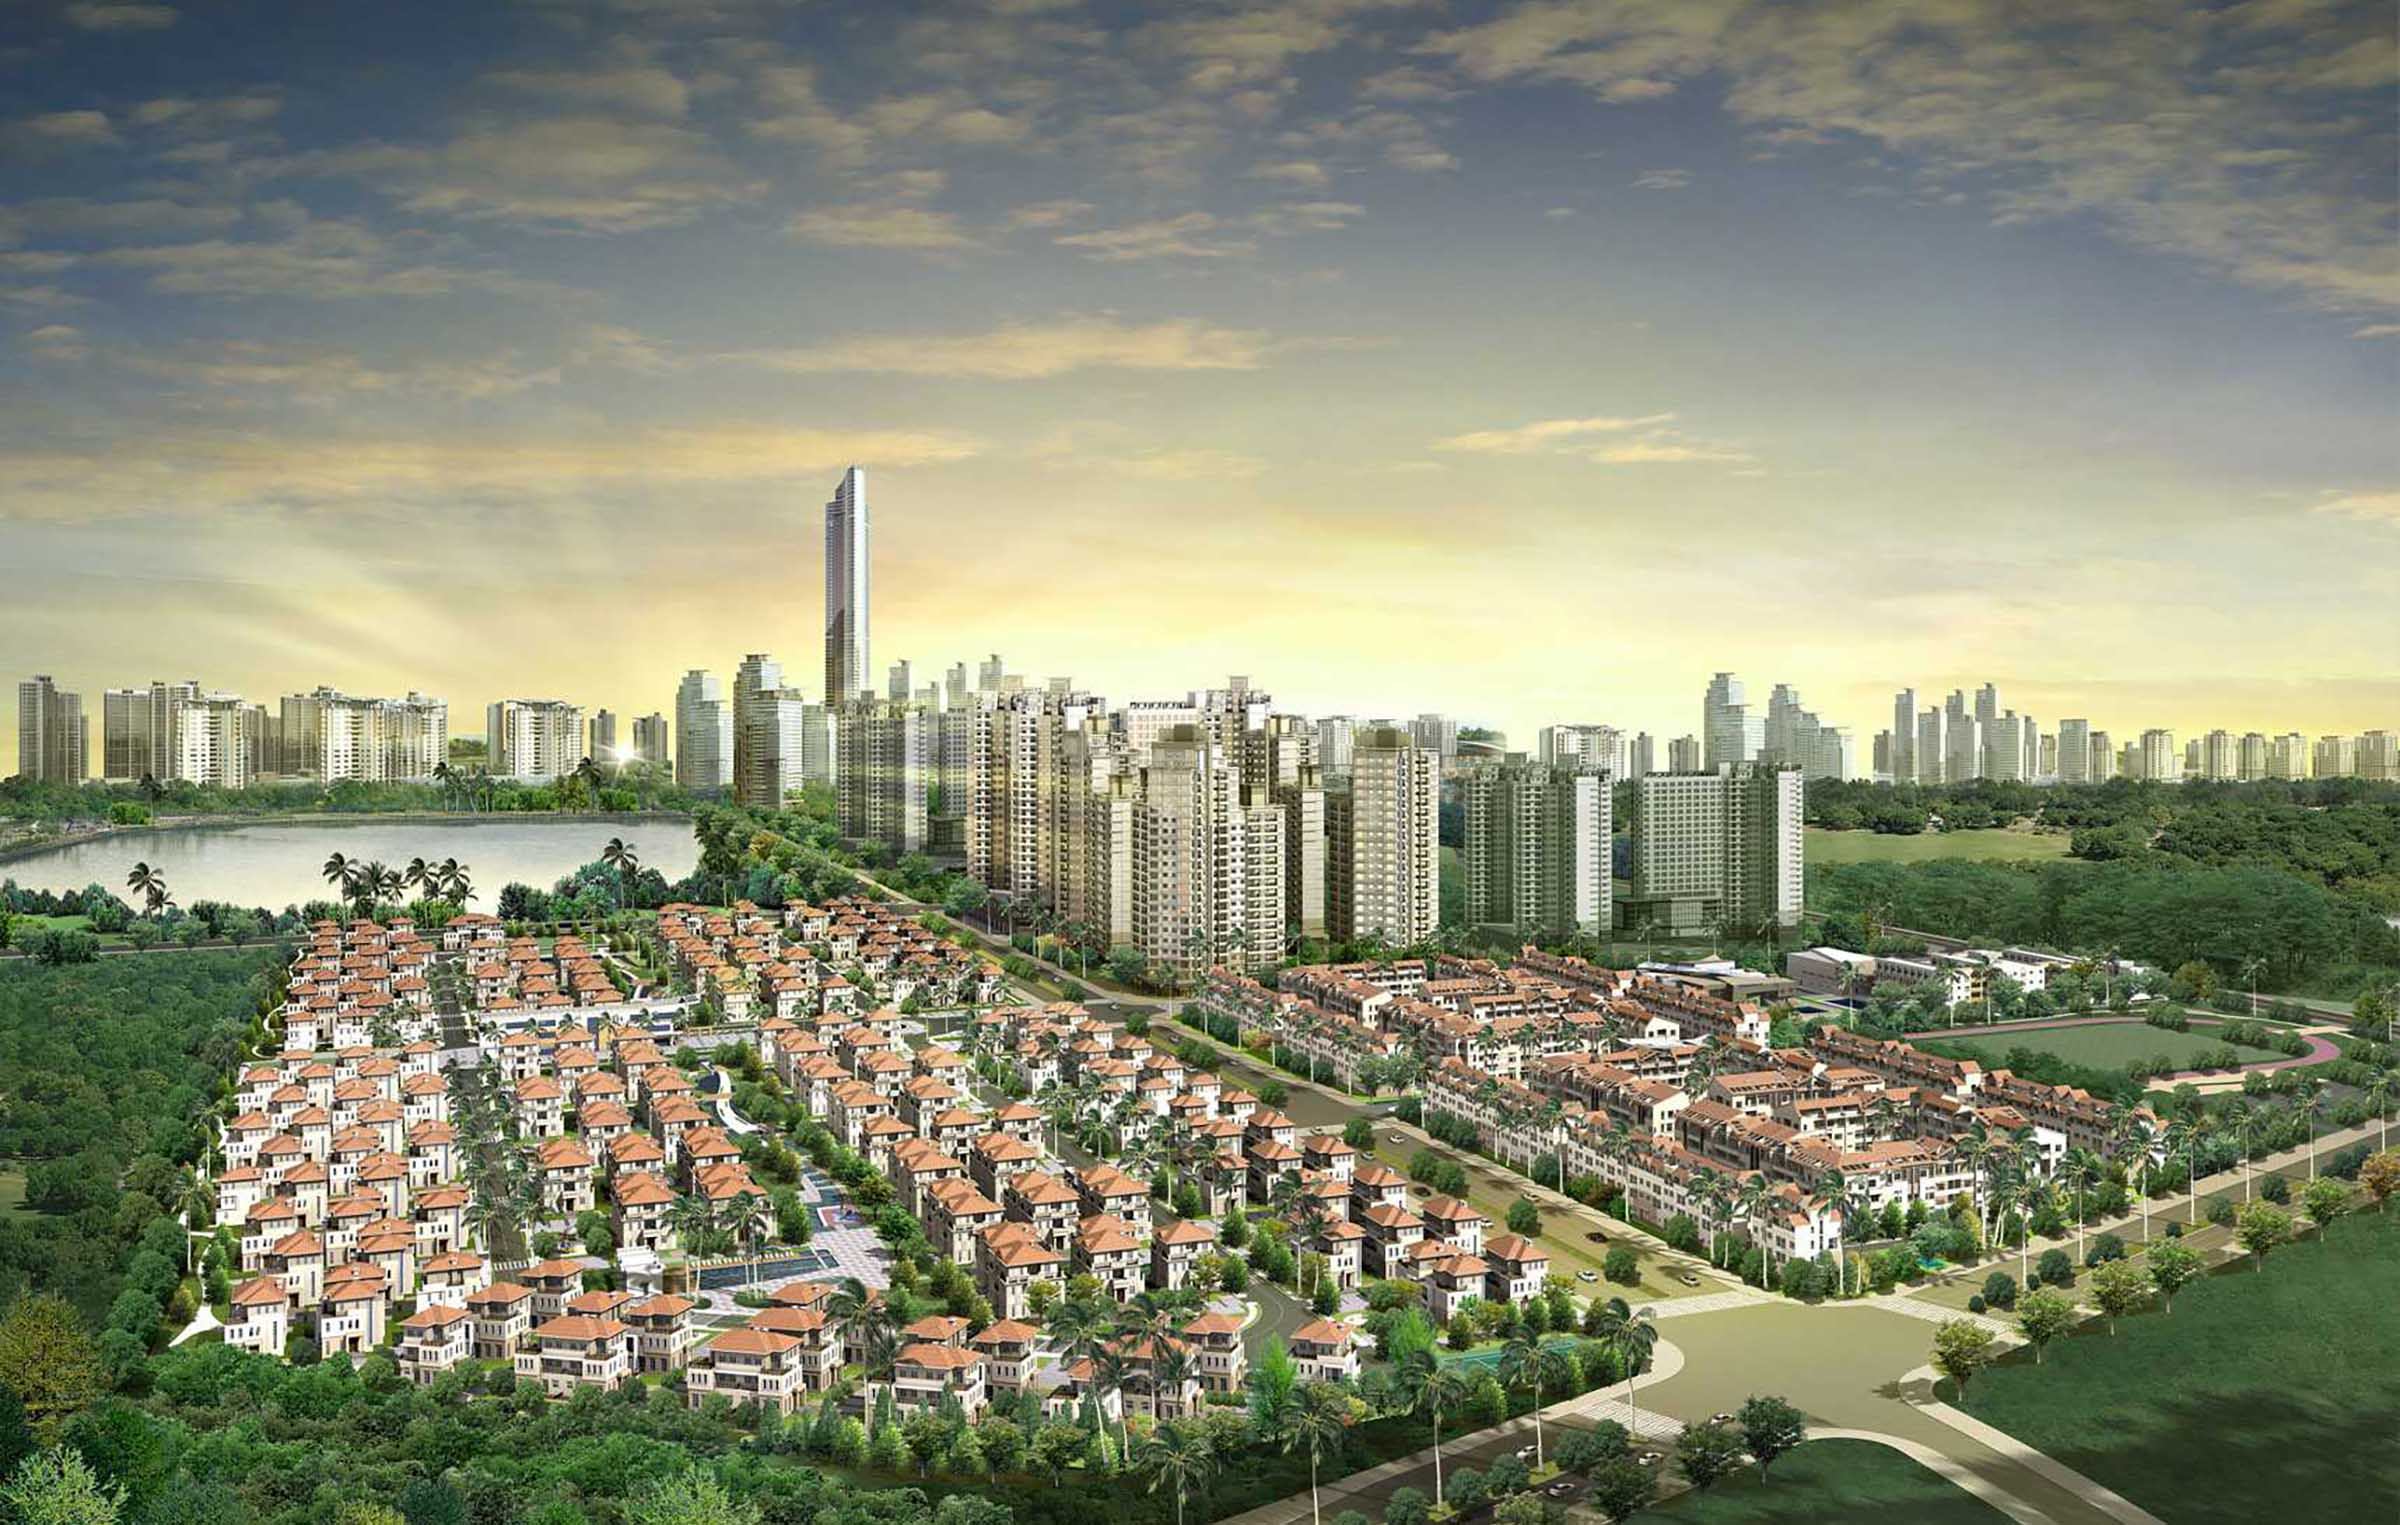 Real Estate In Vietnam: The High Rise Future Of Ho Chi Minh City